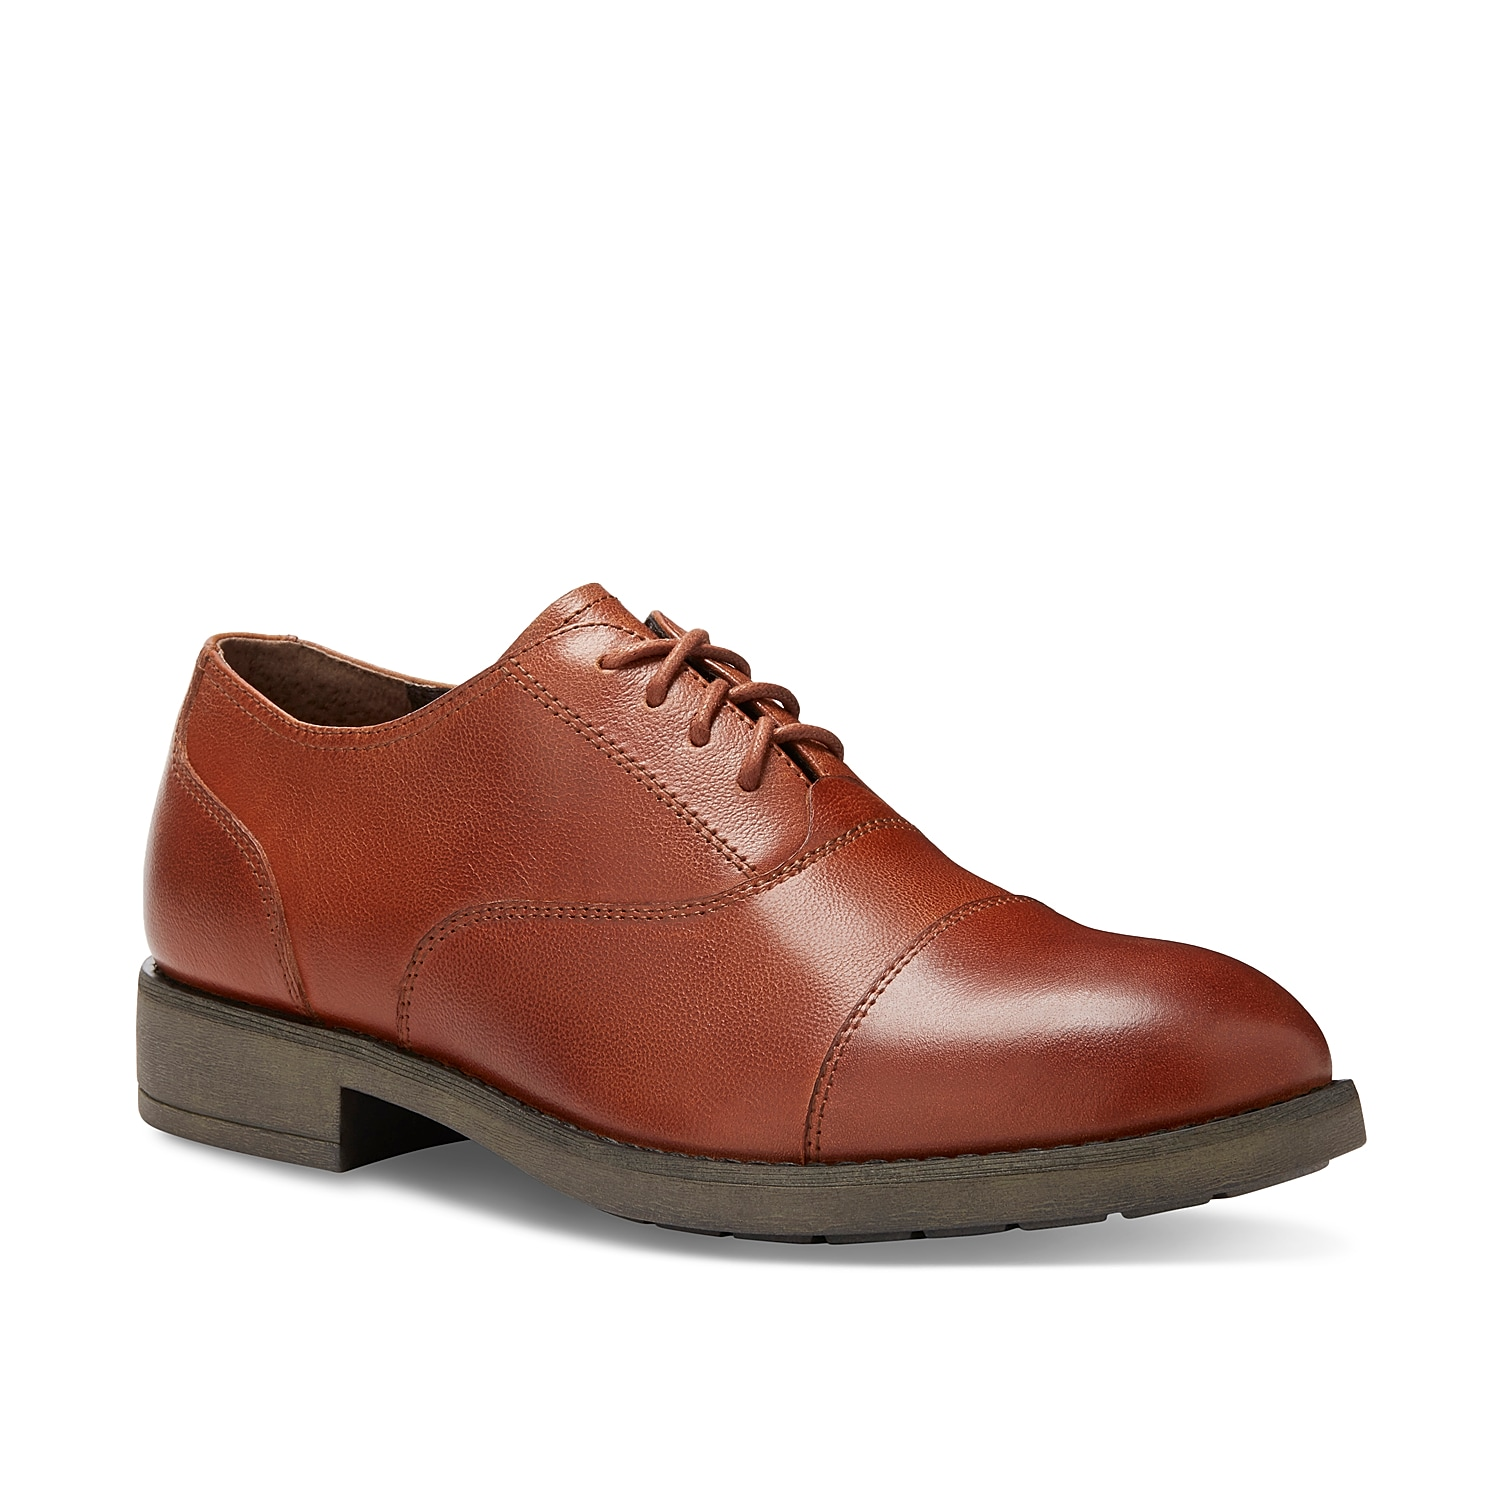 Go for simple sophistication with the Eastland Sierra lace-up oxford. This sleek-and-simple leather dress shoe will pair perfectly with dark wash jeans or tailored slacks.